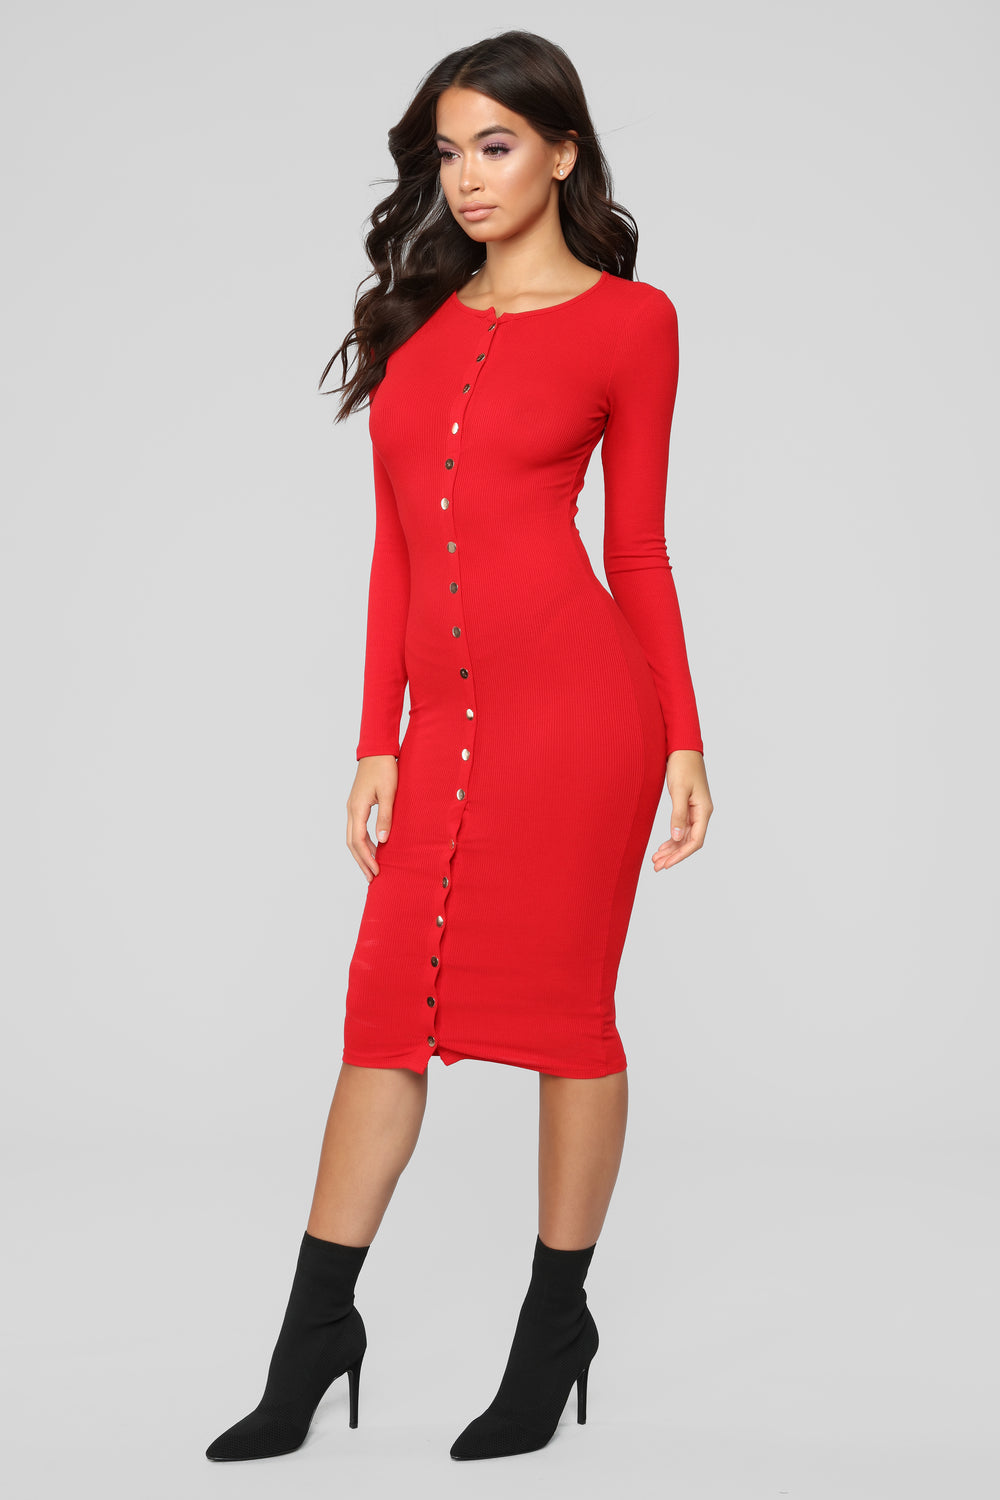 Call It Puppy Love Dress - Red